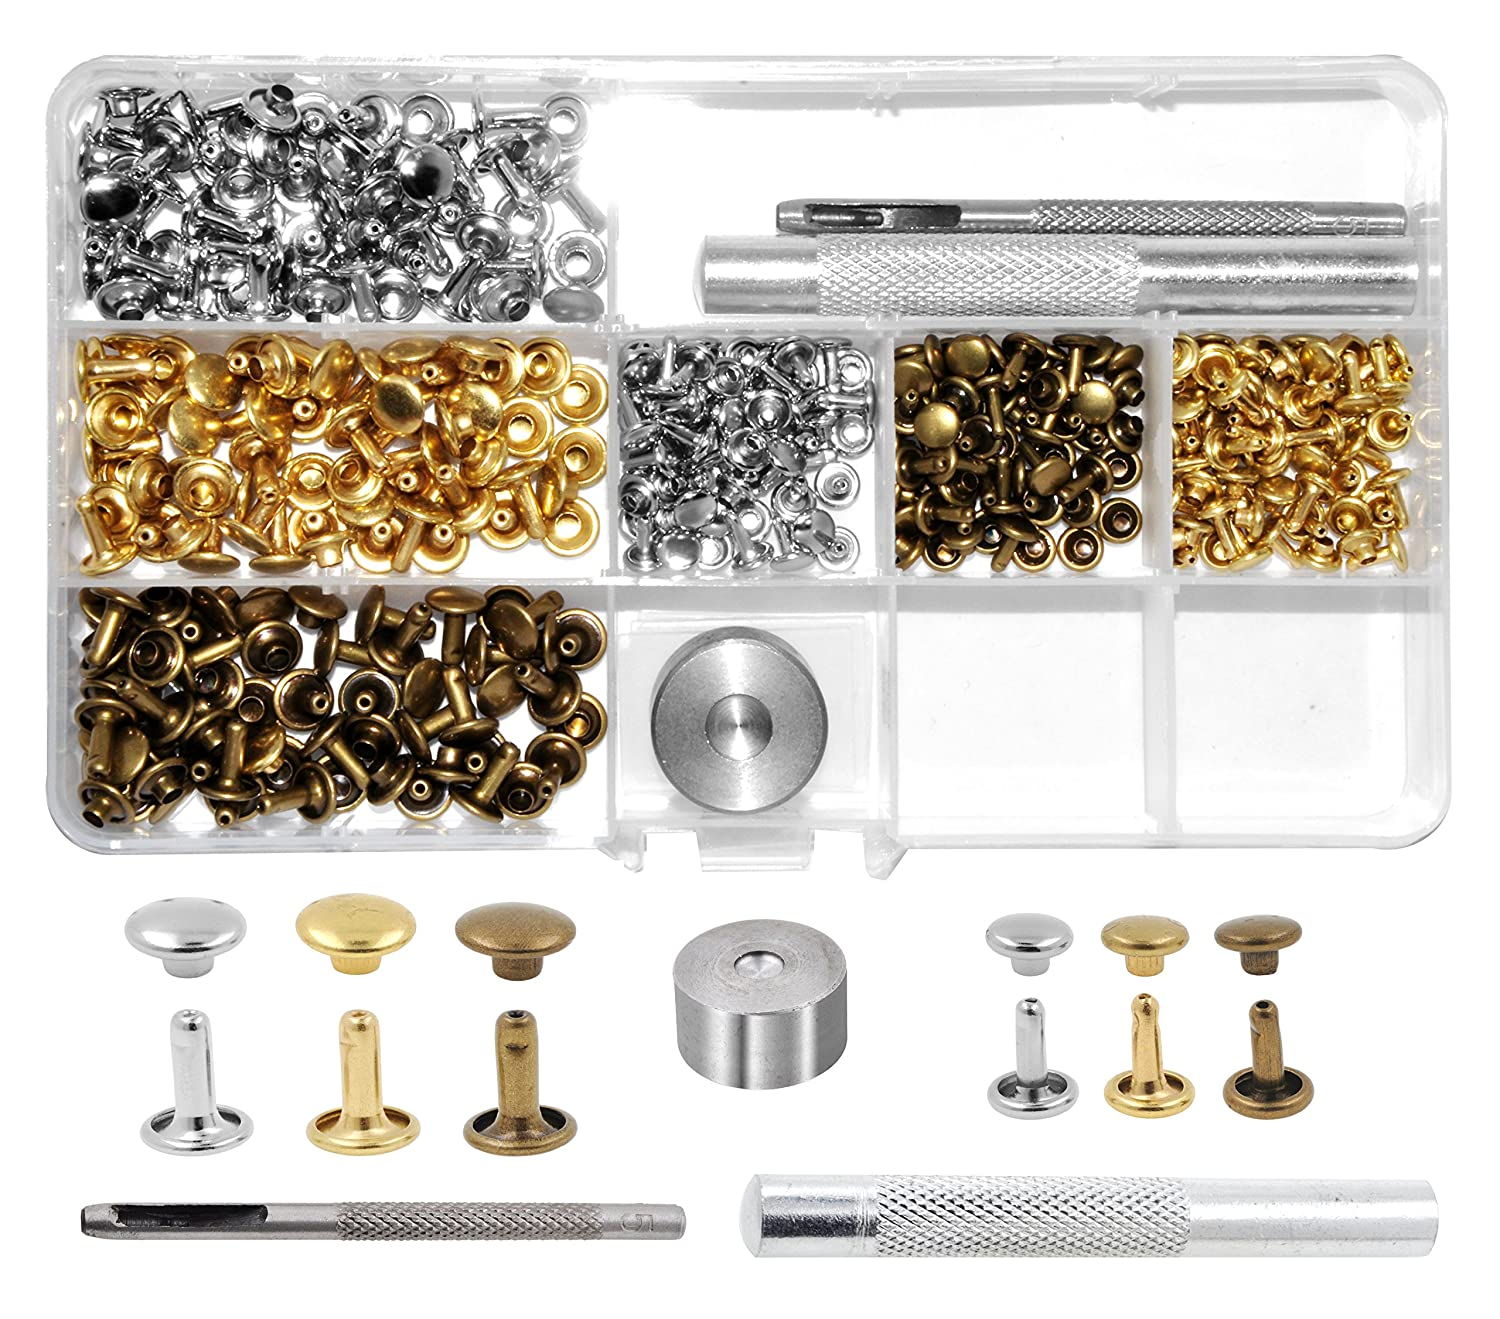 Mandala Crafts Assorted Tubular Metal Rivet Studs & Hole Punch Tool Kit Set for Leather Repair and Clothing Decoration (6mm 8mm, Silver Gold Antique Bronze)